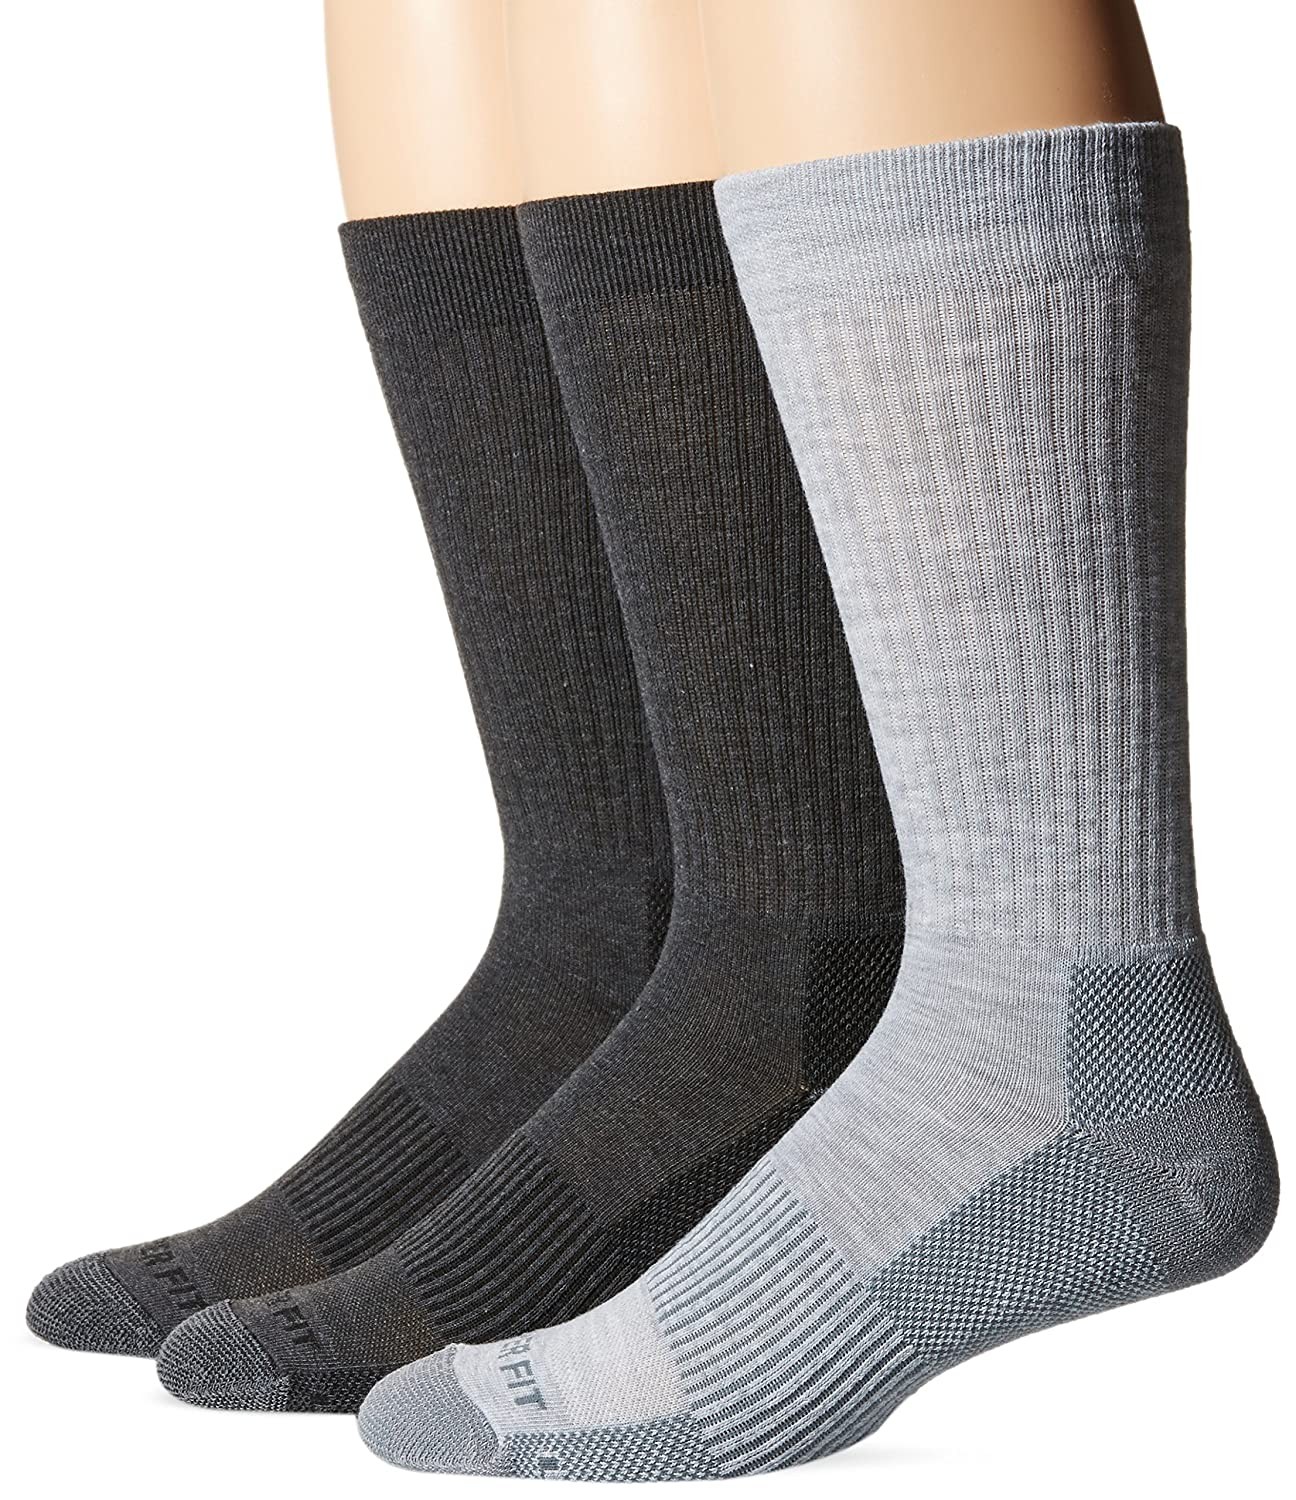 fd445f132 Copper Fit Men s Performance Sport Cushion Crew Socks (3 pair) Shoe Size  6-12 at Amazon Men s Clothing store